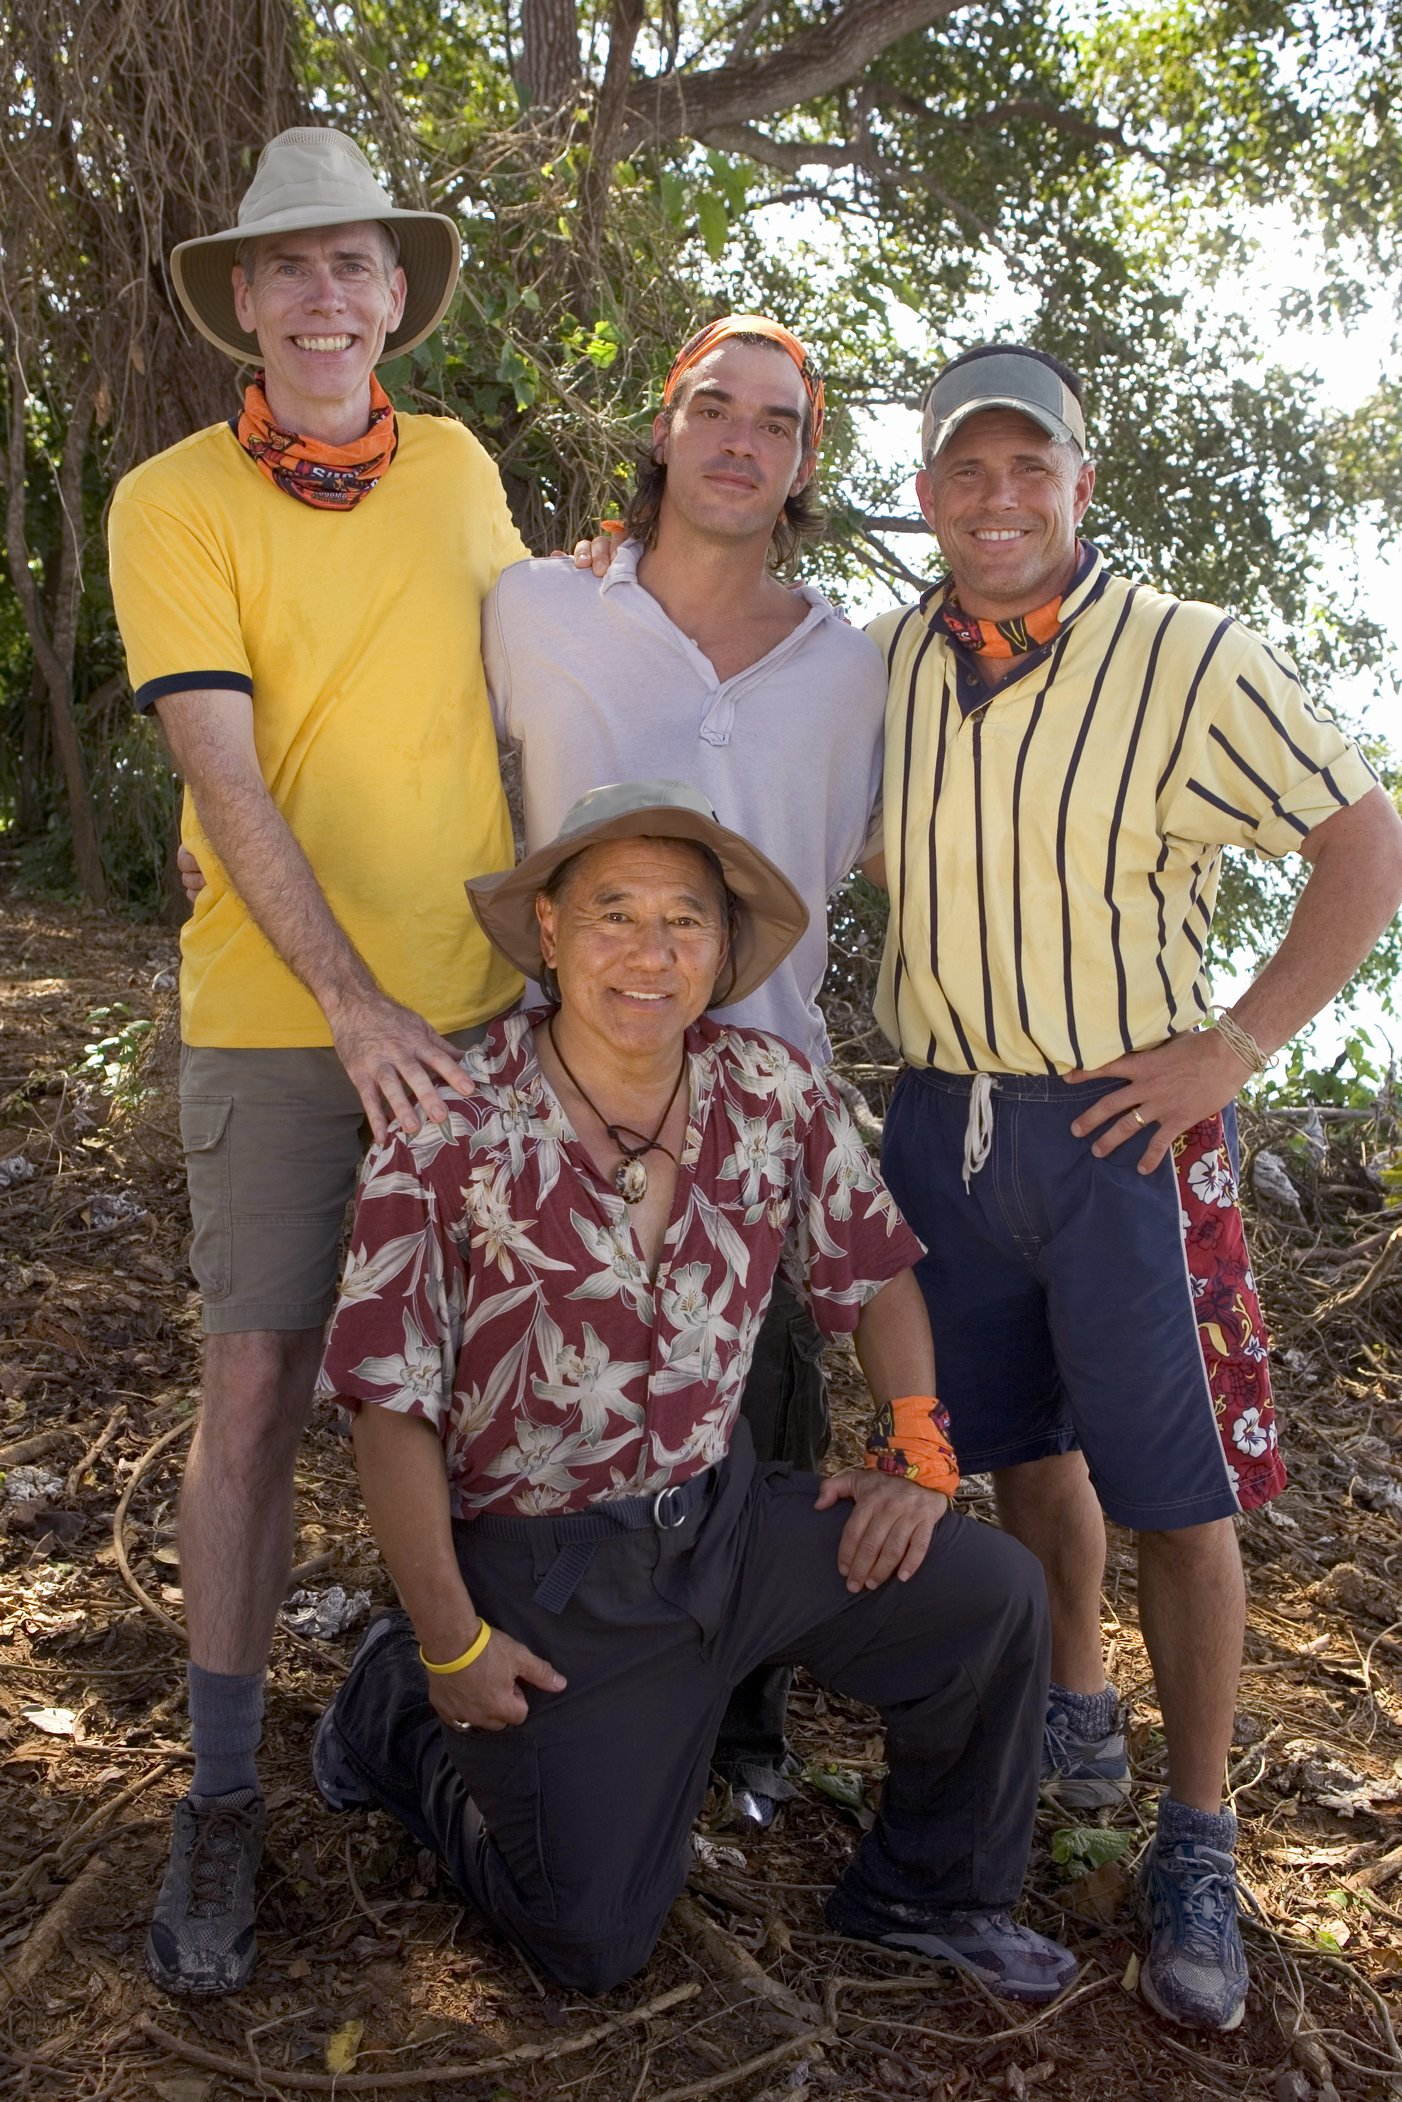 File:Panama Orange Tribe.jpg